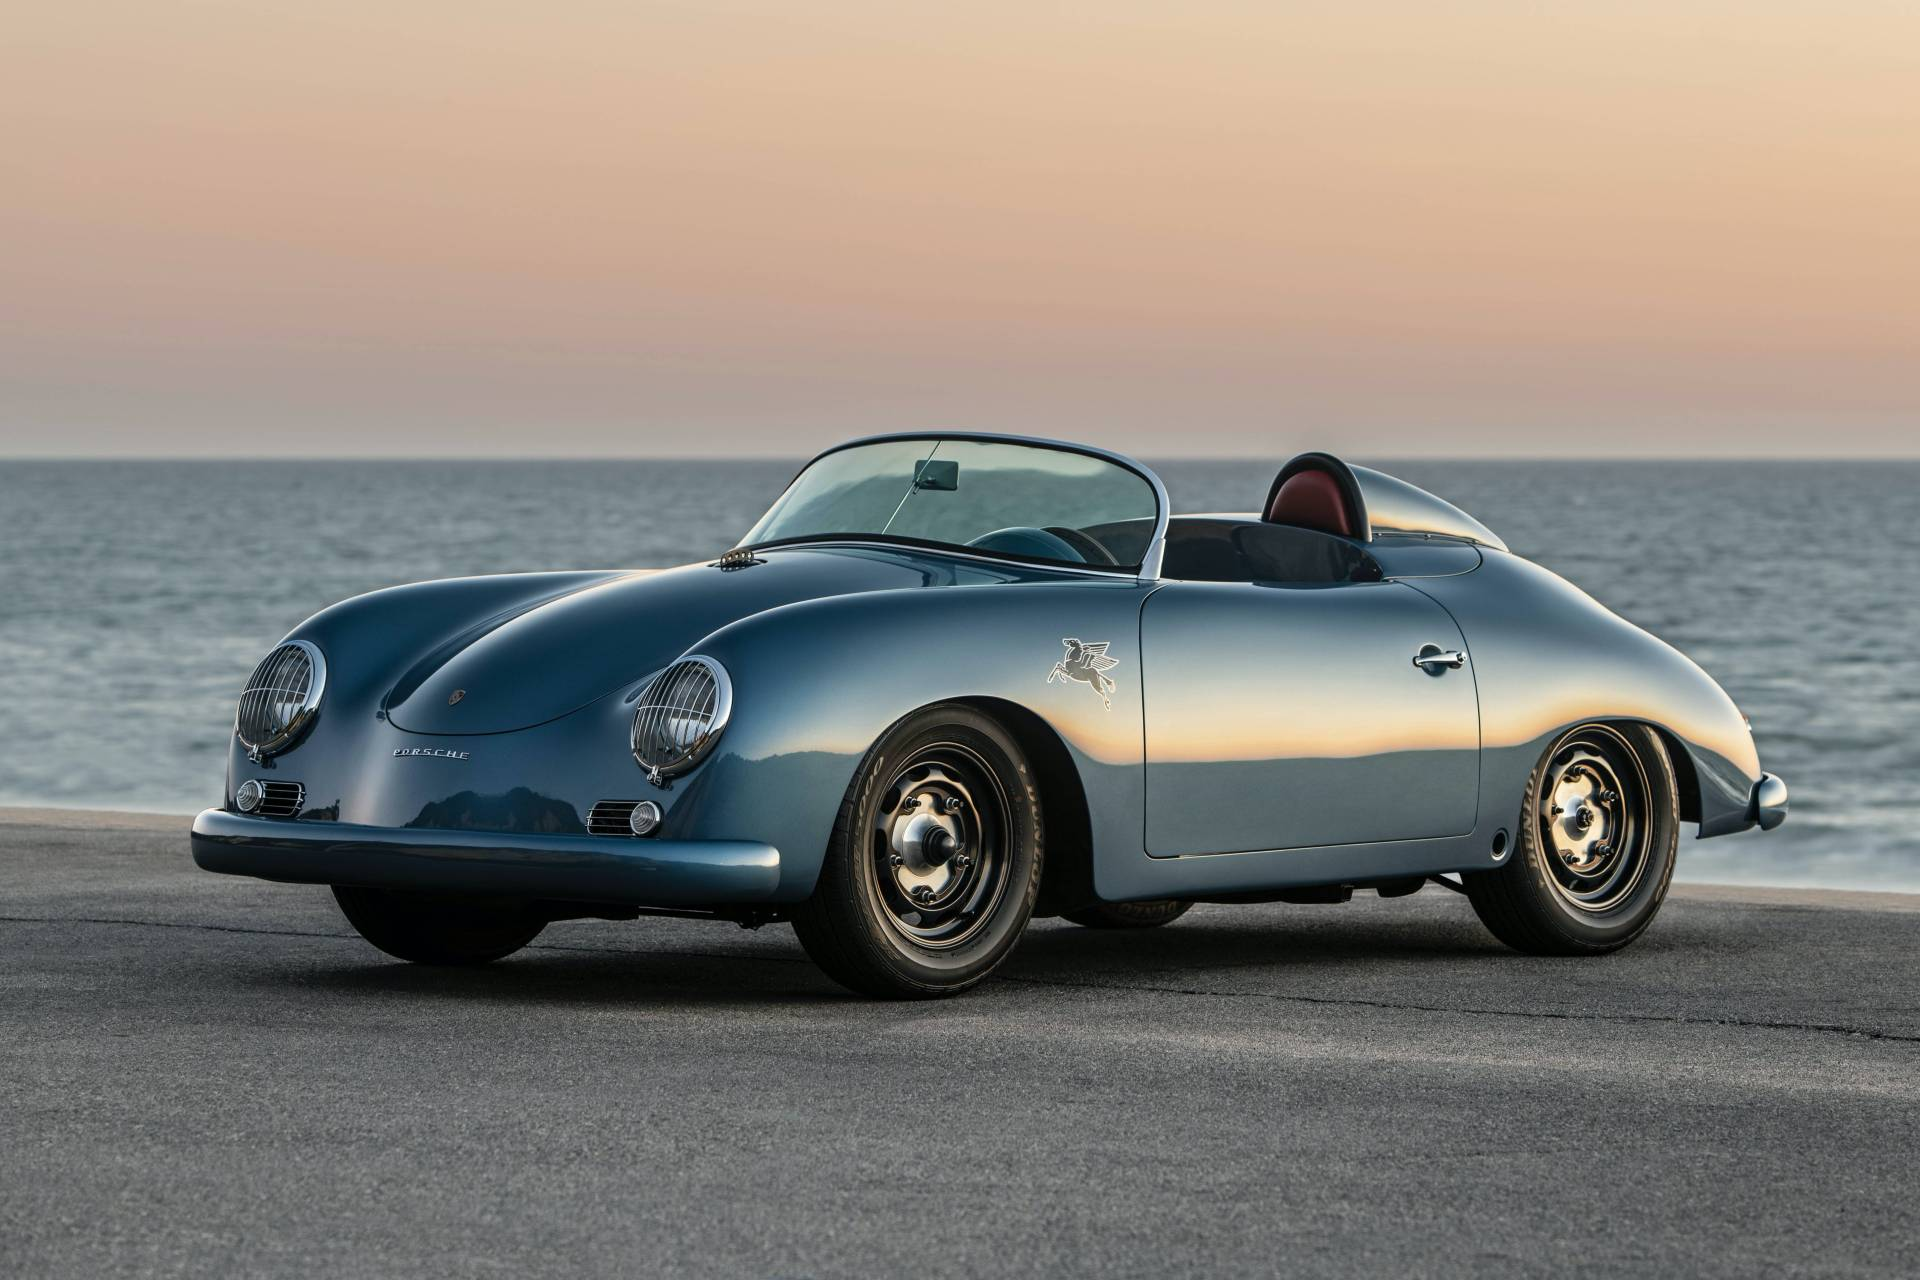 Porsche-356-Speedster-1959-Aquamarine-Transitional-By-Emory-Motorsport-6